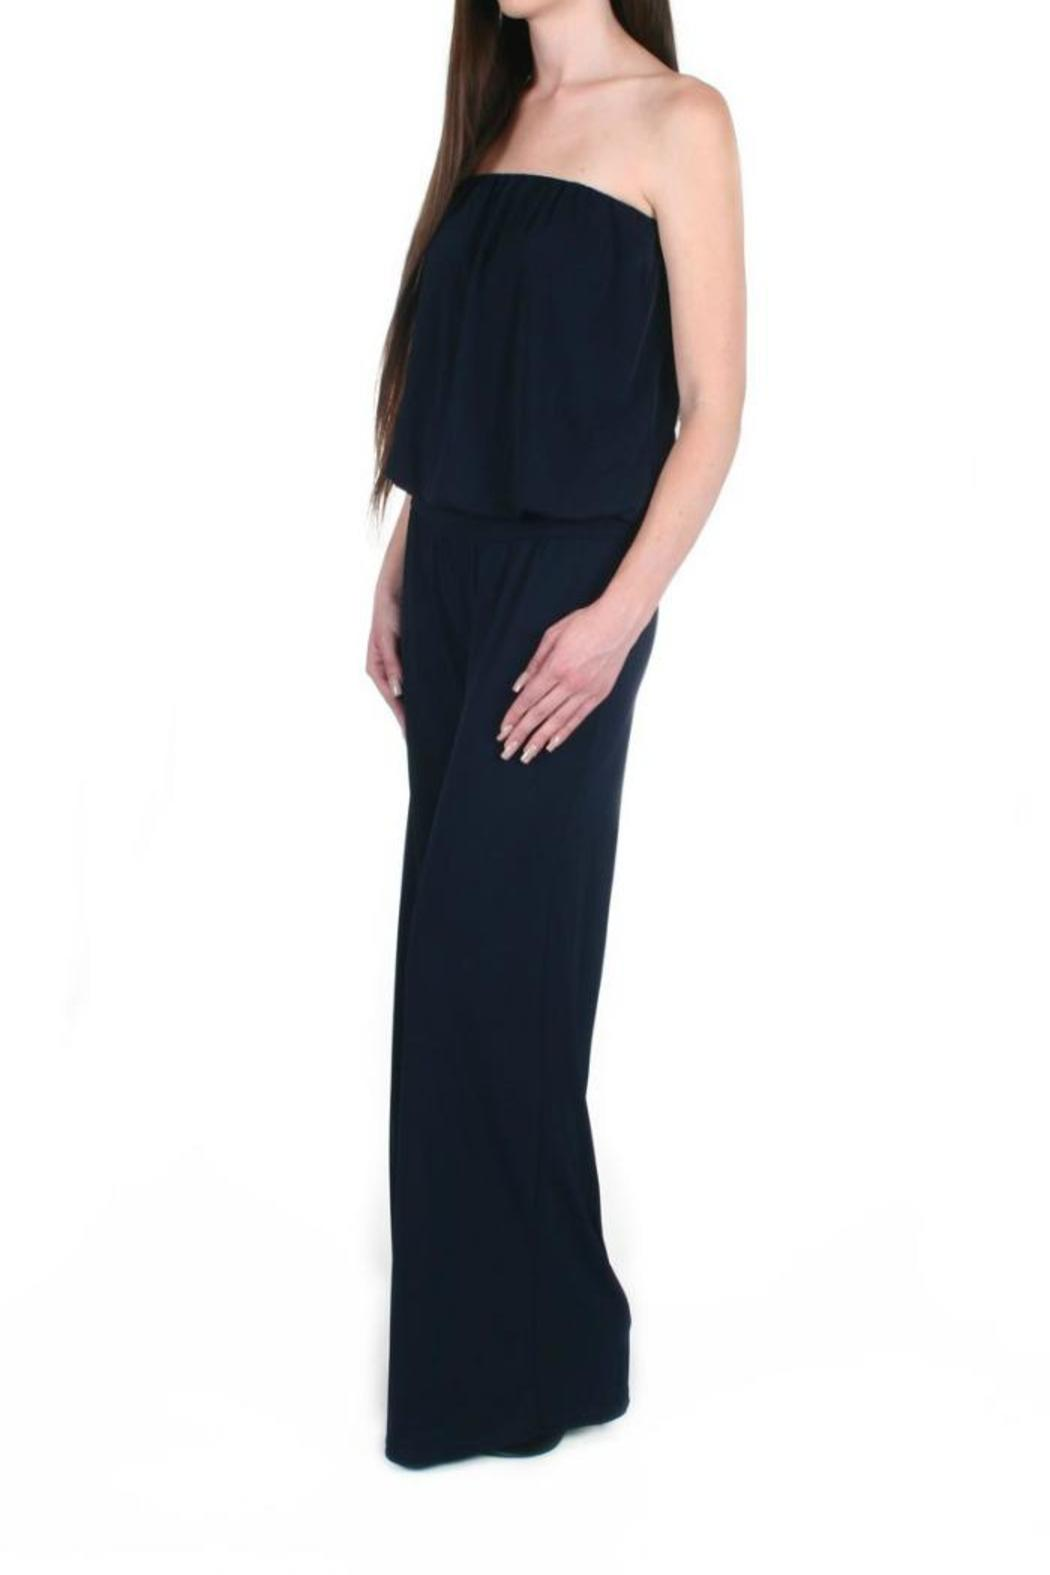 Veronica M Strapless Wide Leg Jumpsuit From New Jersey By Alba Front Full Image